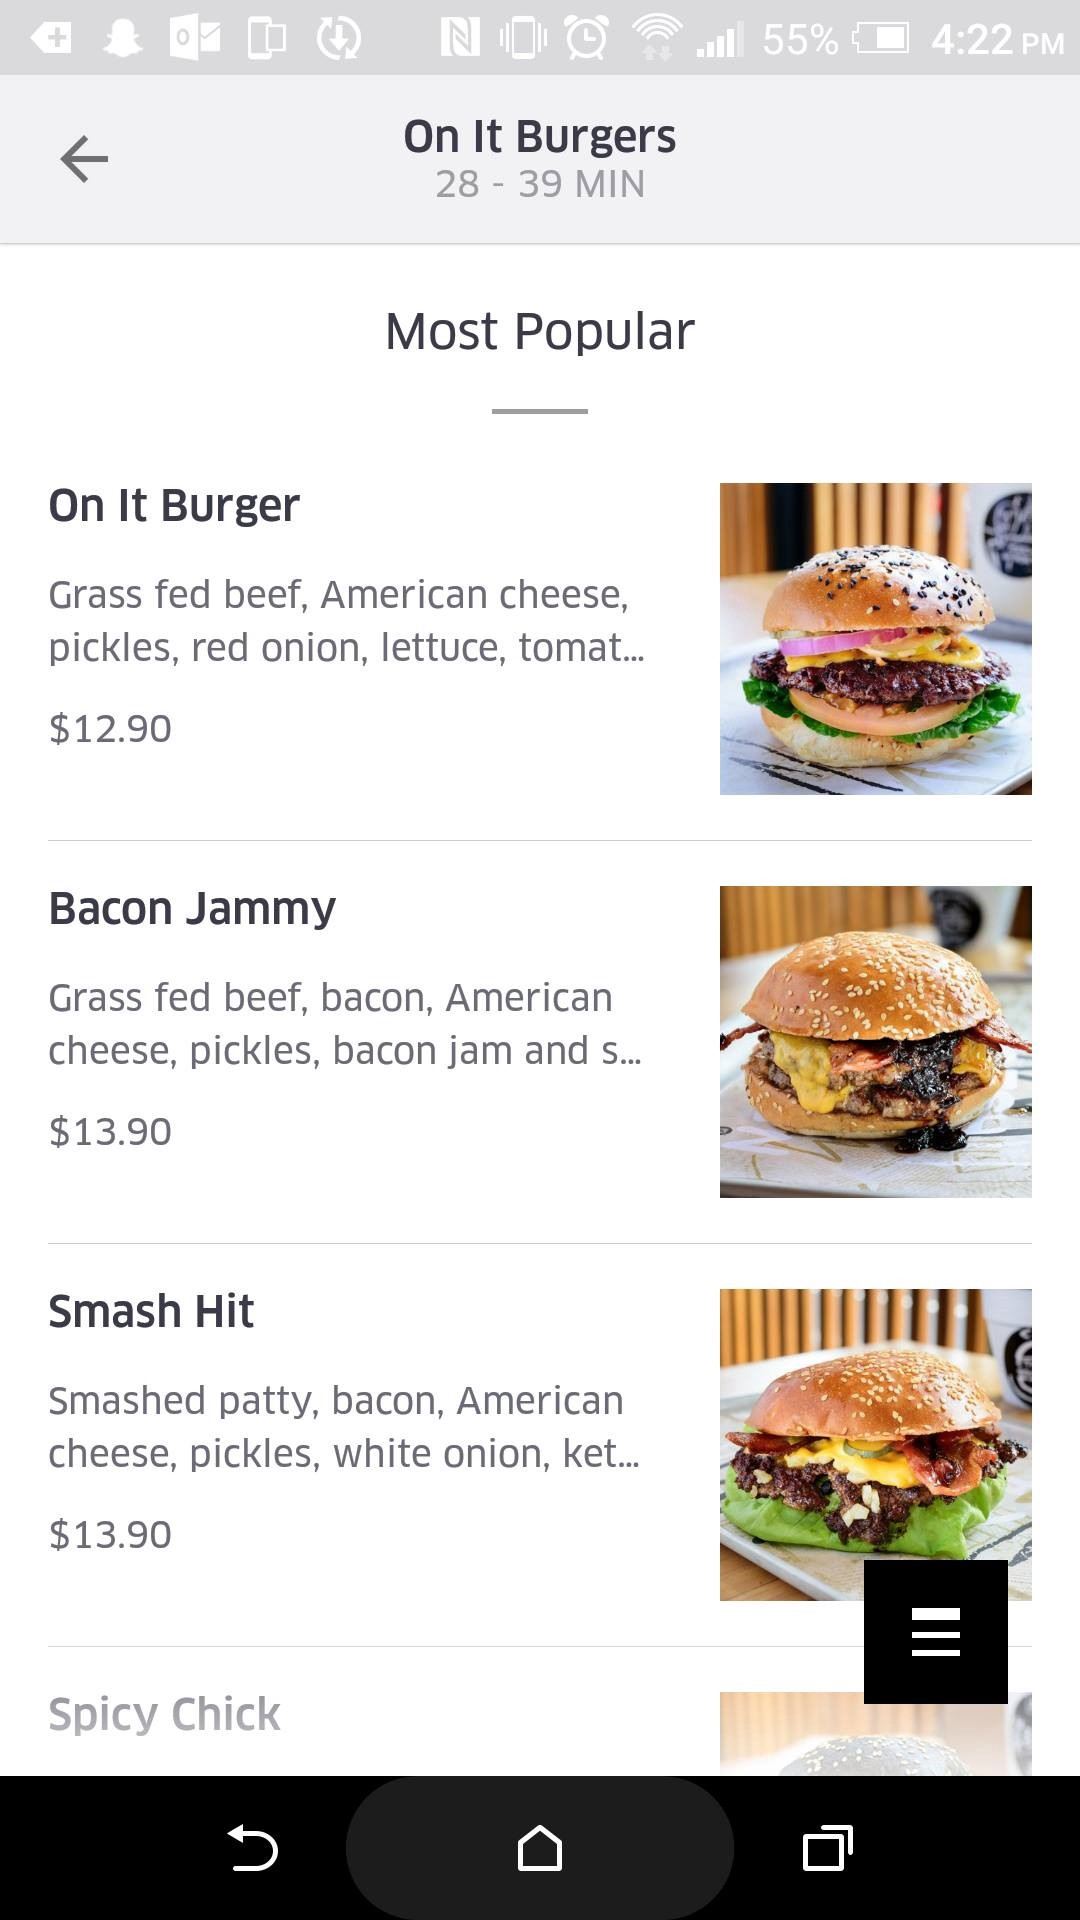 UberEats VS Deliveroo: Which App Has The Best User Experience?